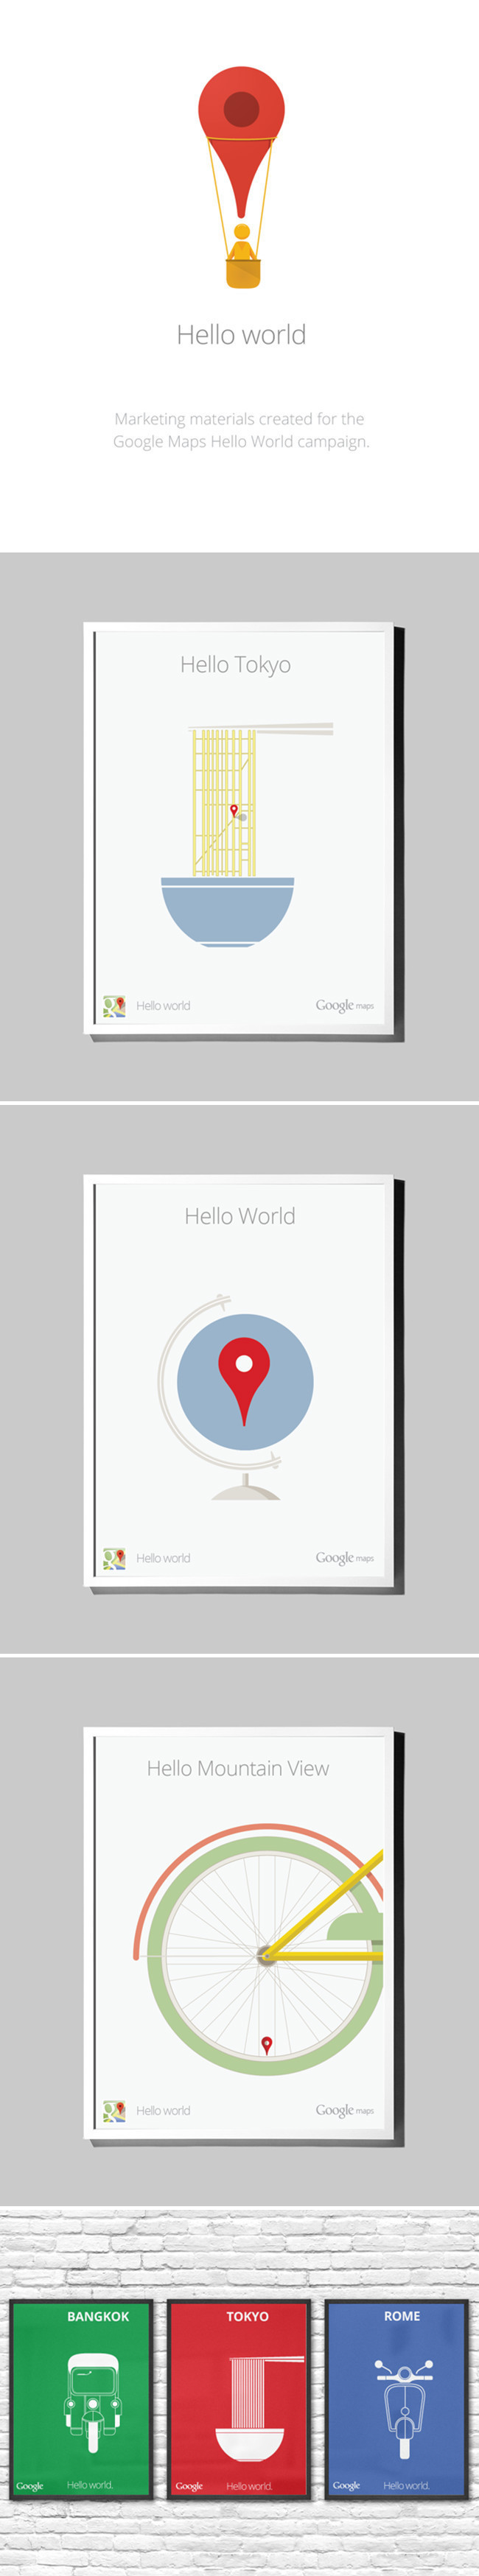 《Hello World》